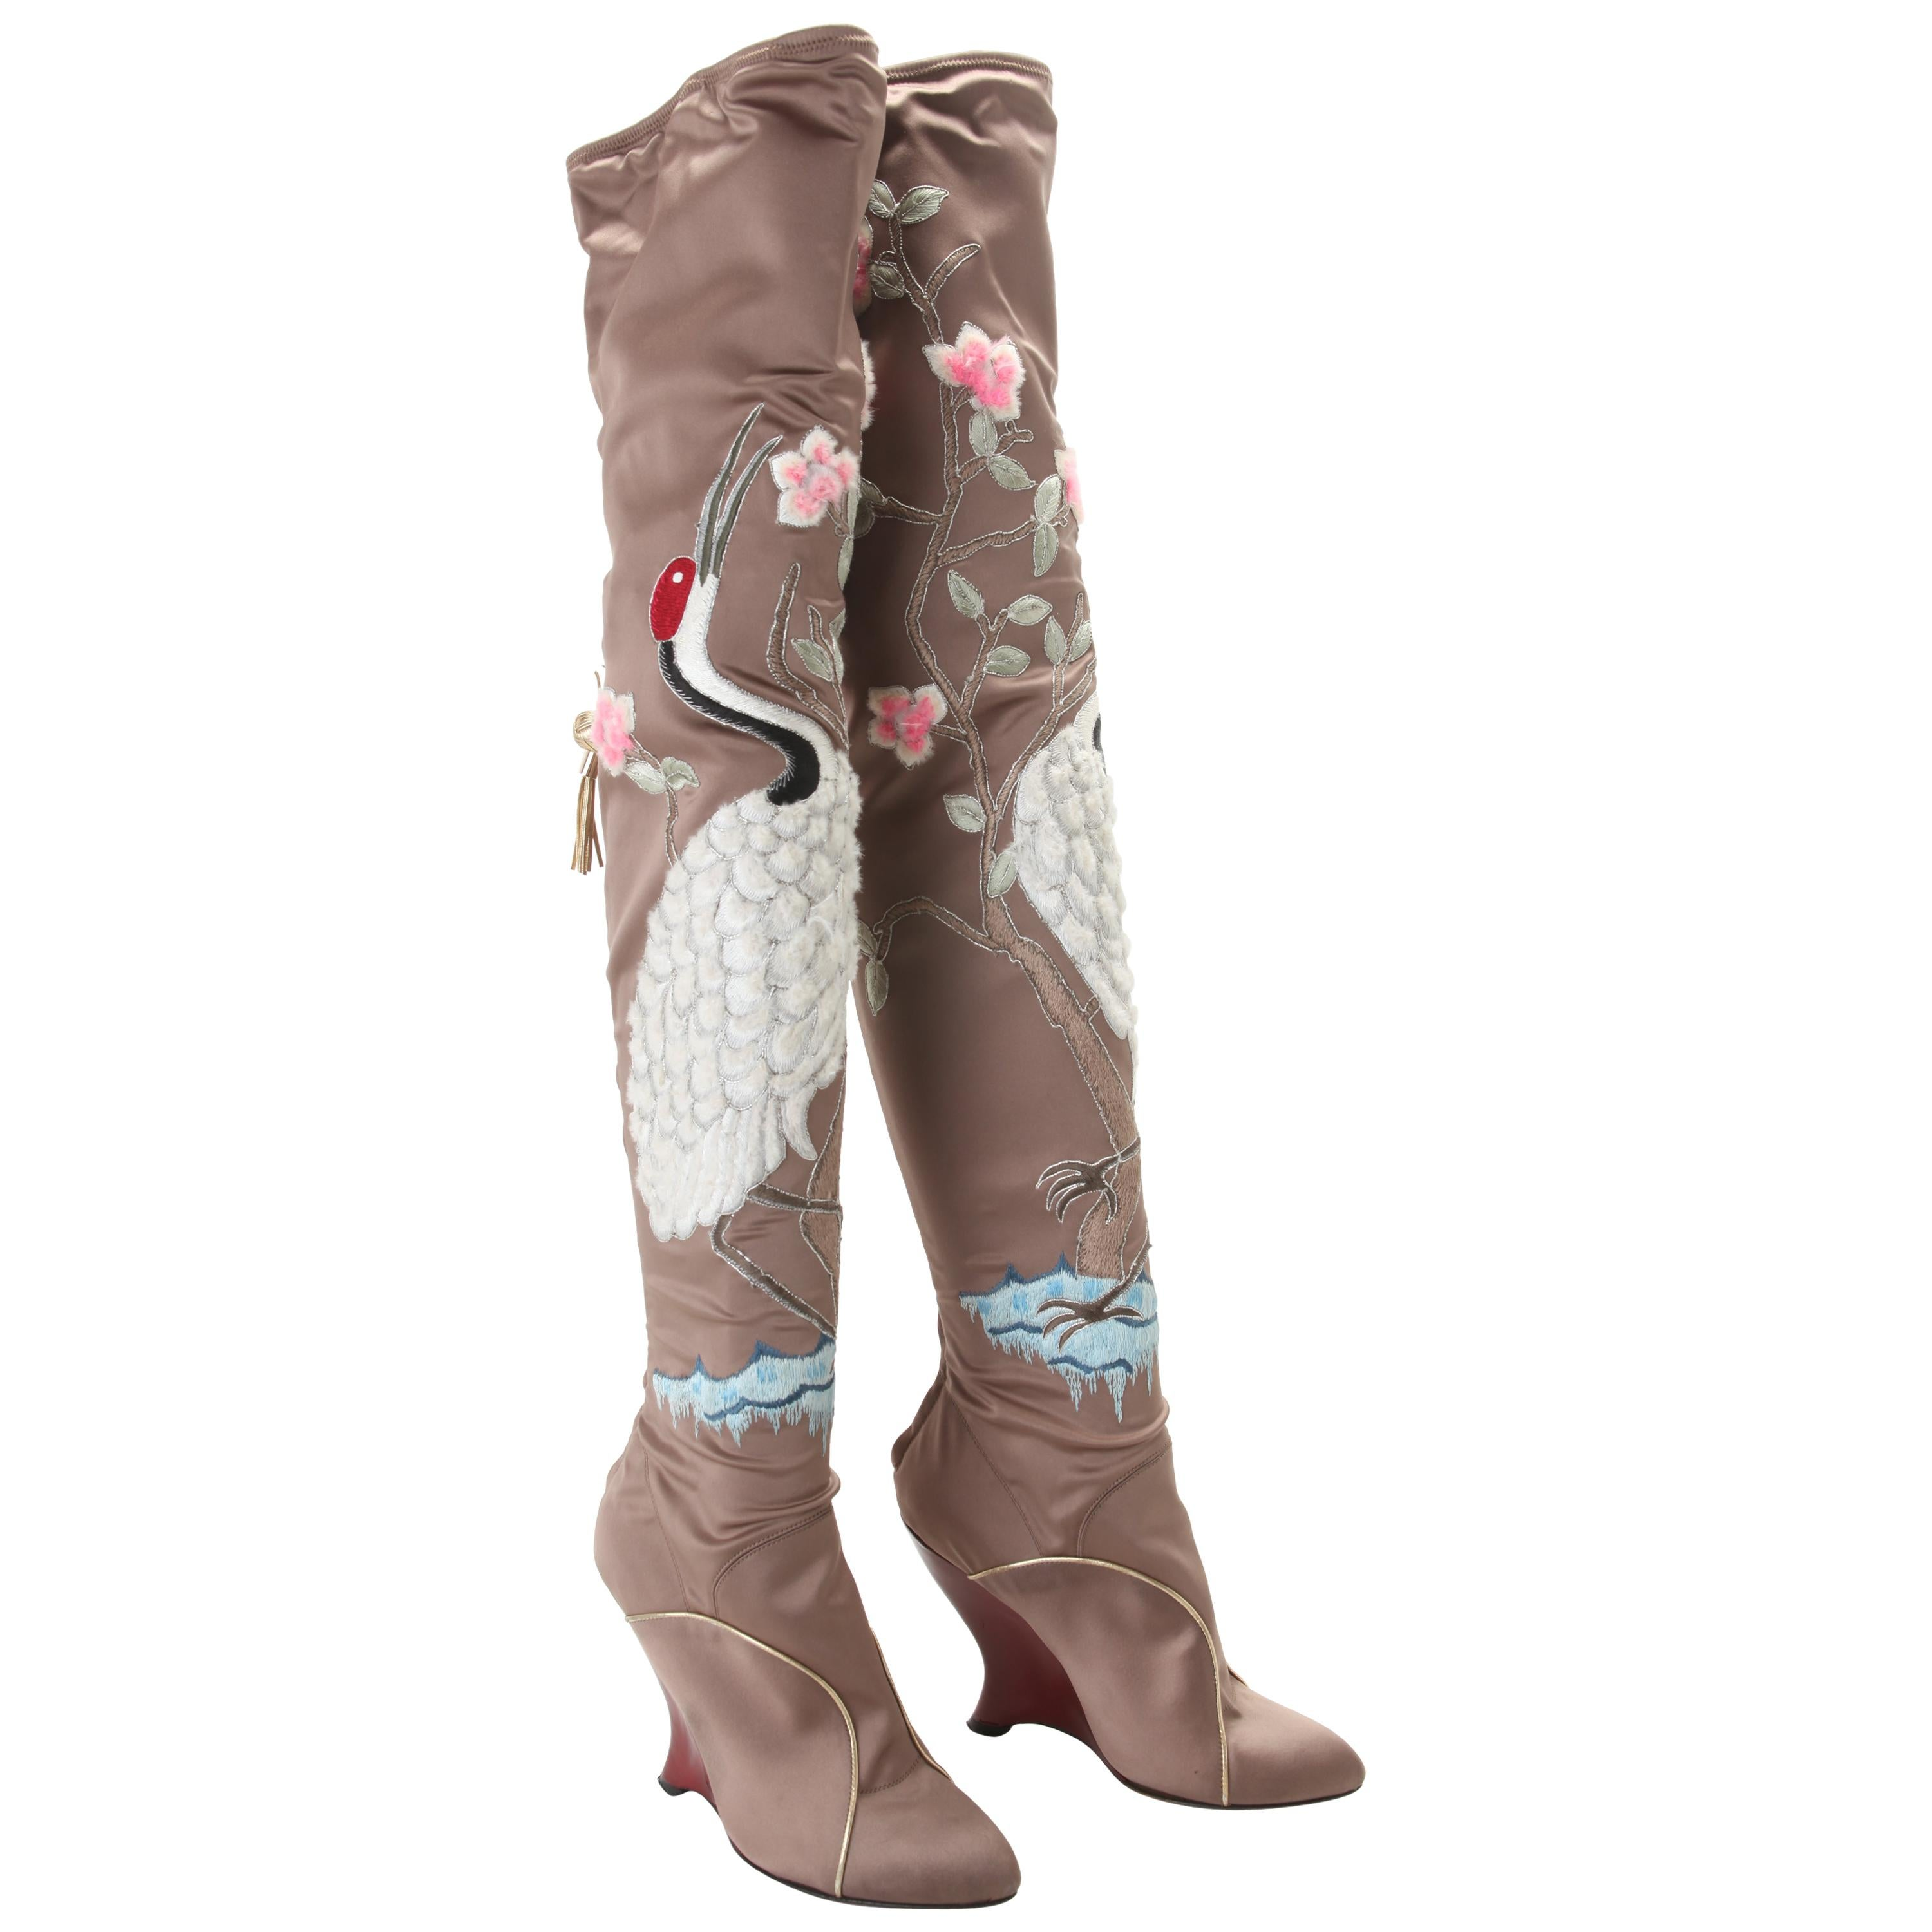 Tom Ford for Yves Saint Laurent Embroidered Satin Boots Fall 2004 EU 40